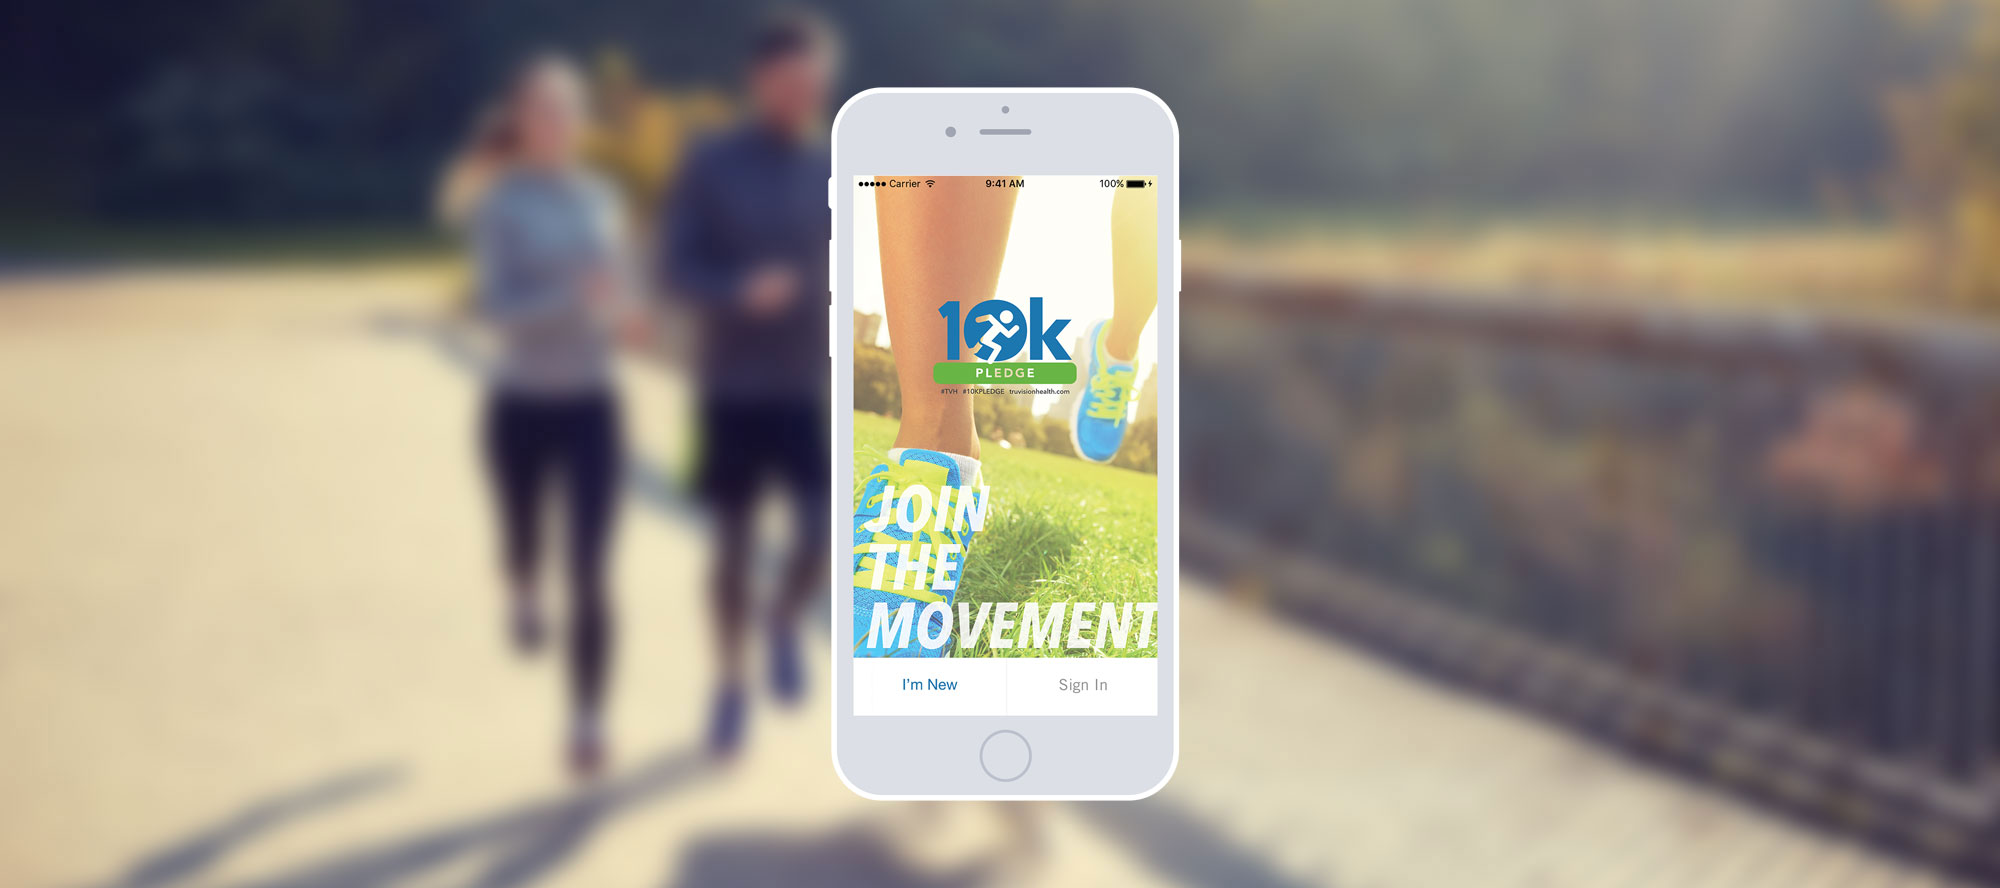 iphone depicting the 10k A Day app with runners running in the background.